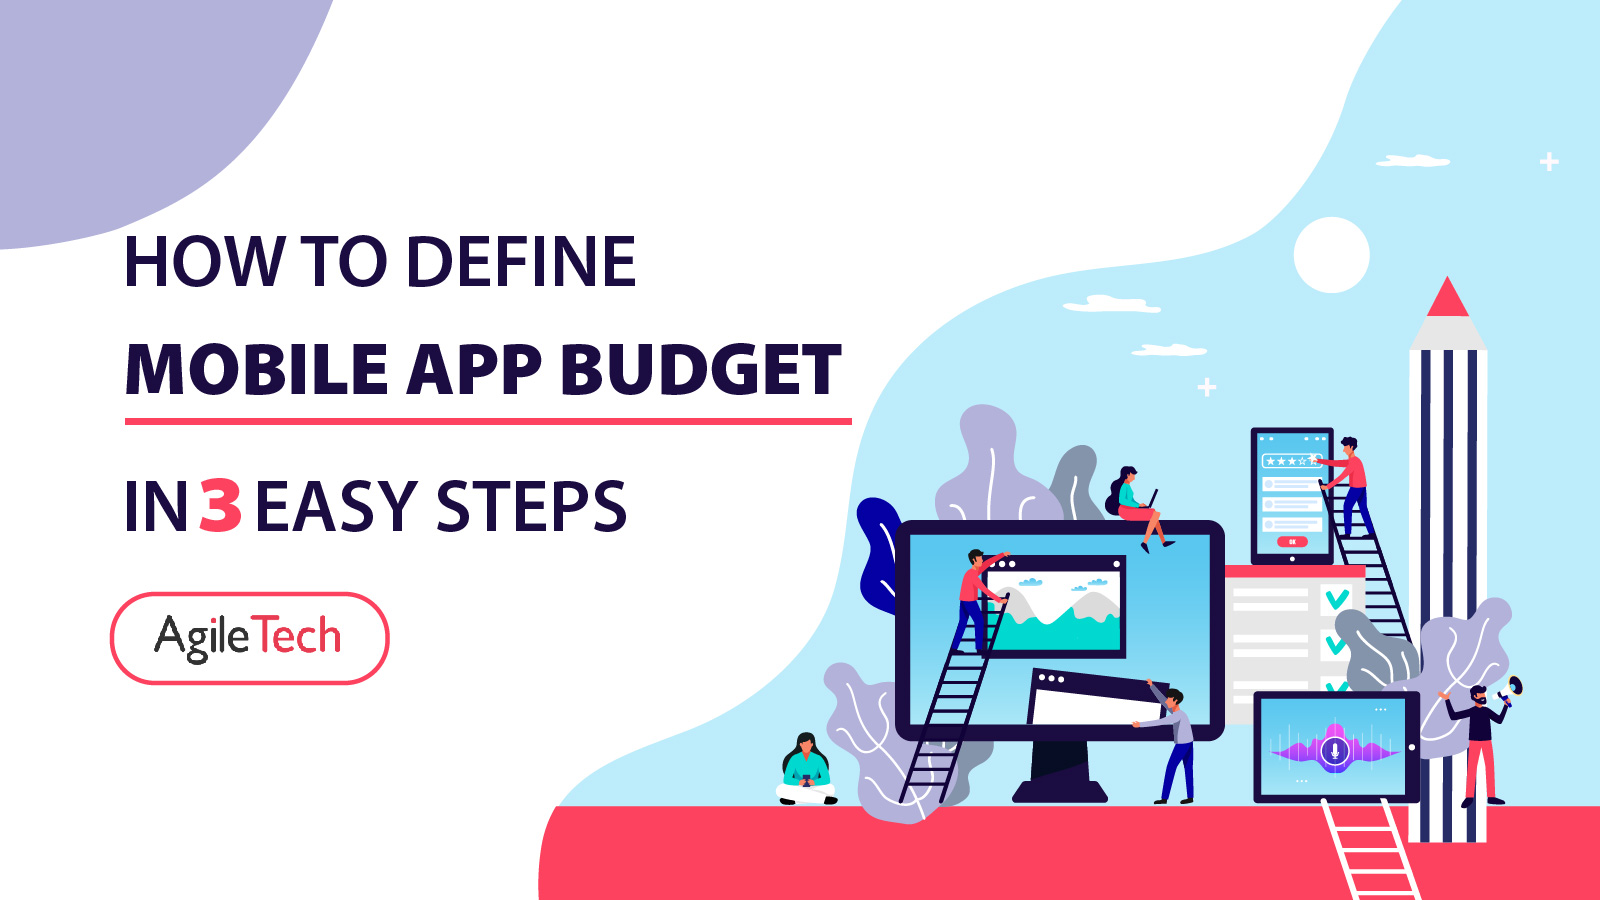 how to define the mobile app budget in easy steps 2020